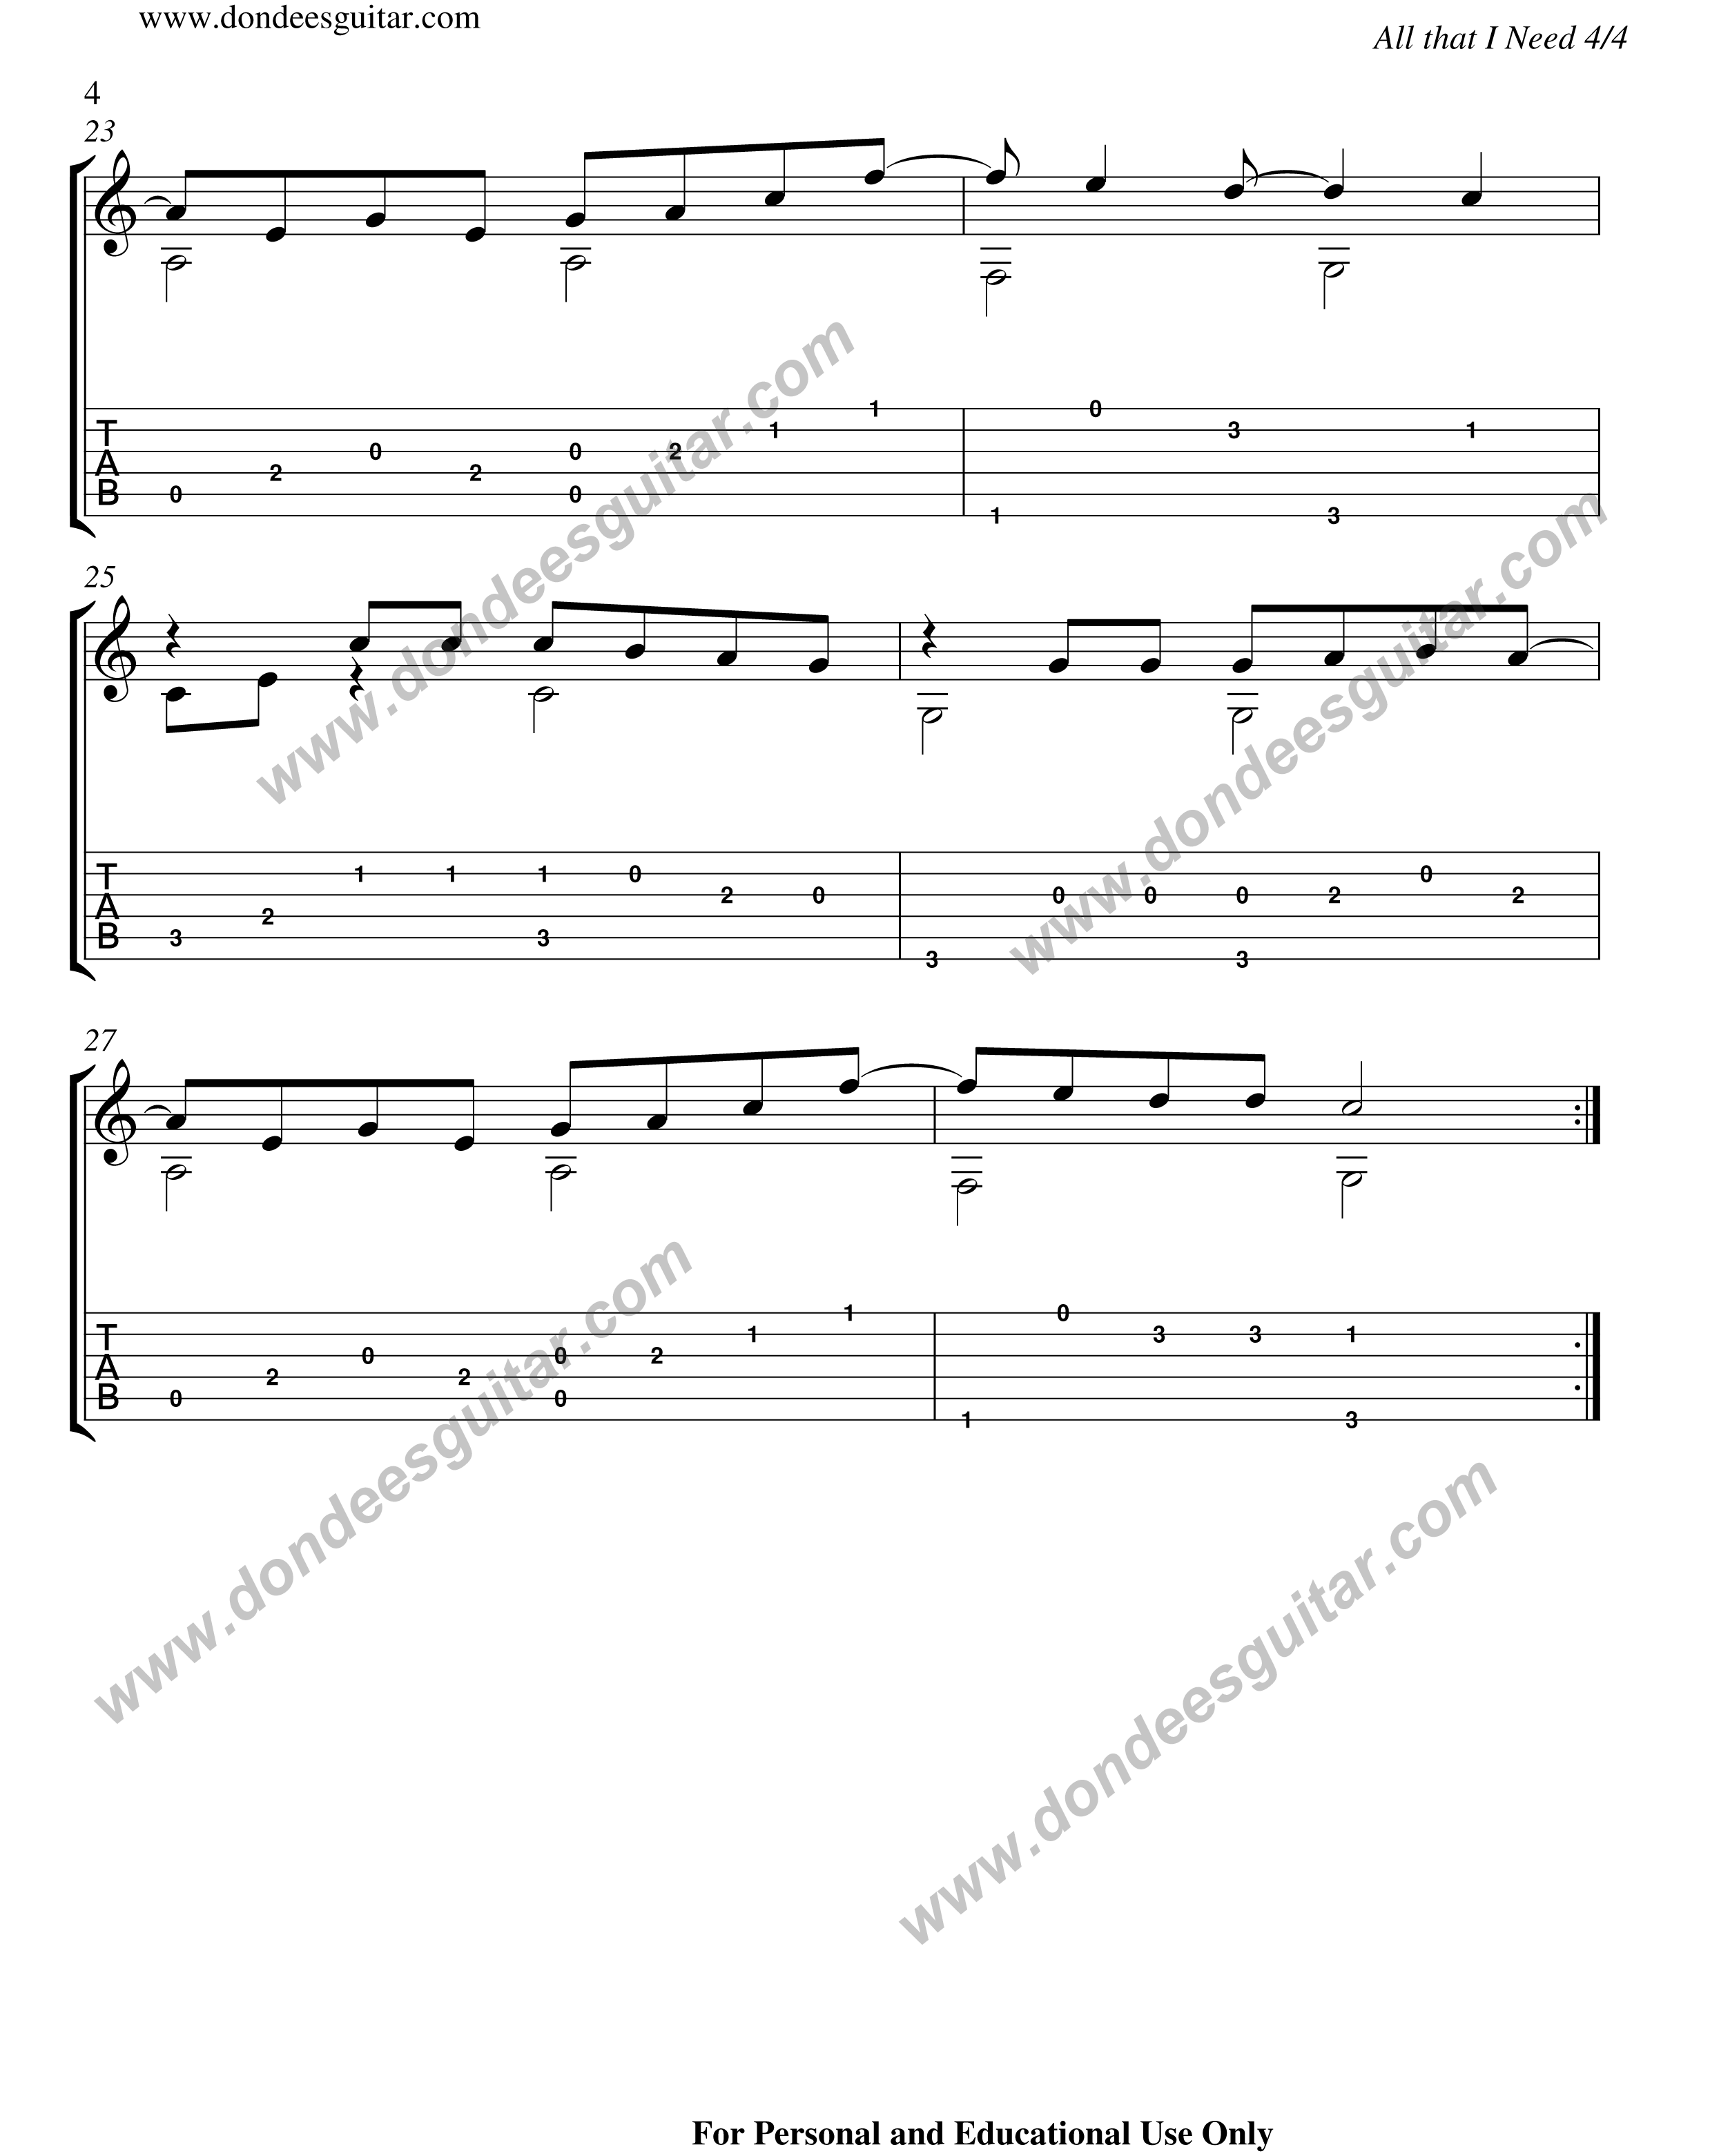 All That I Need Fingerstyle Tabs